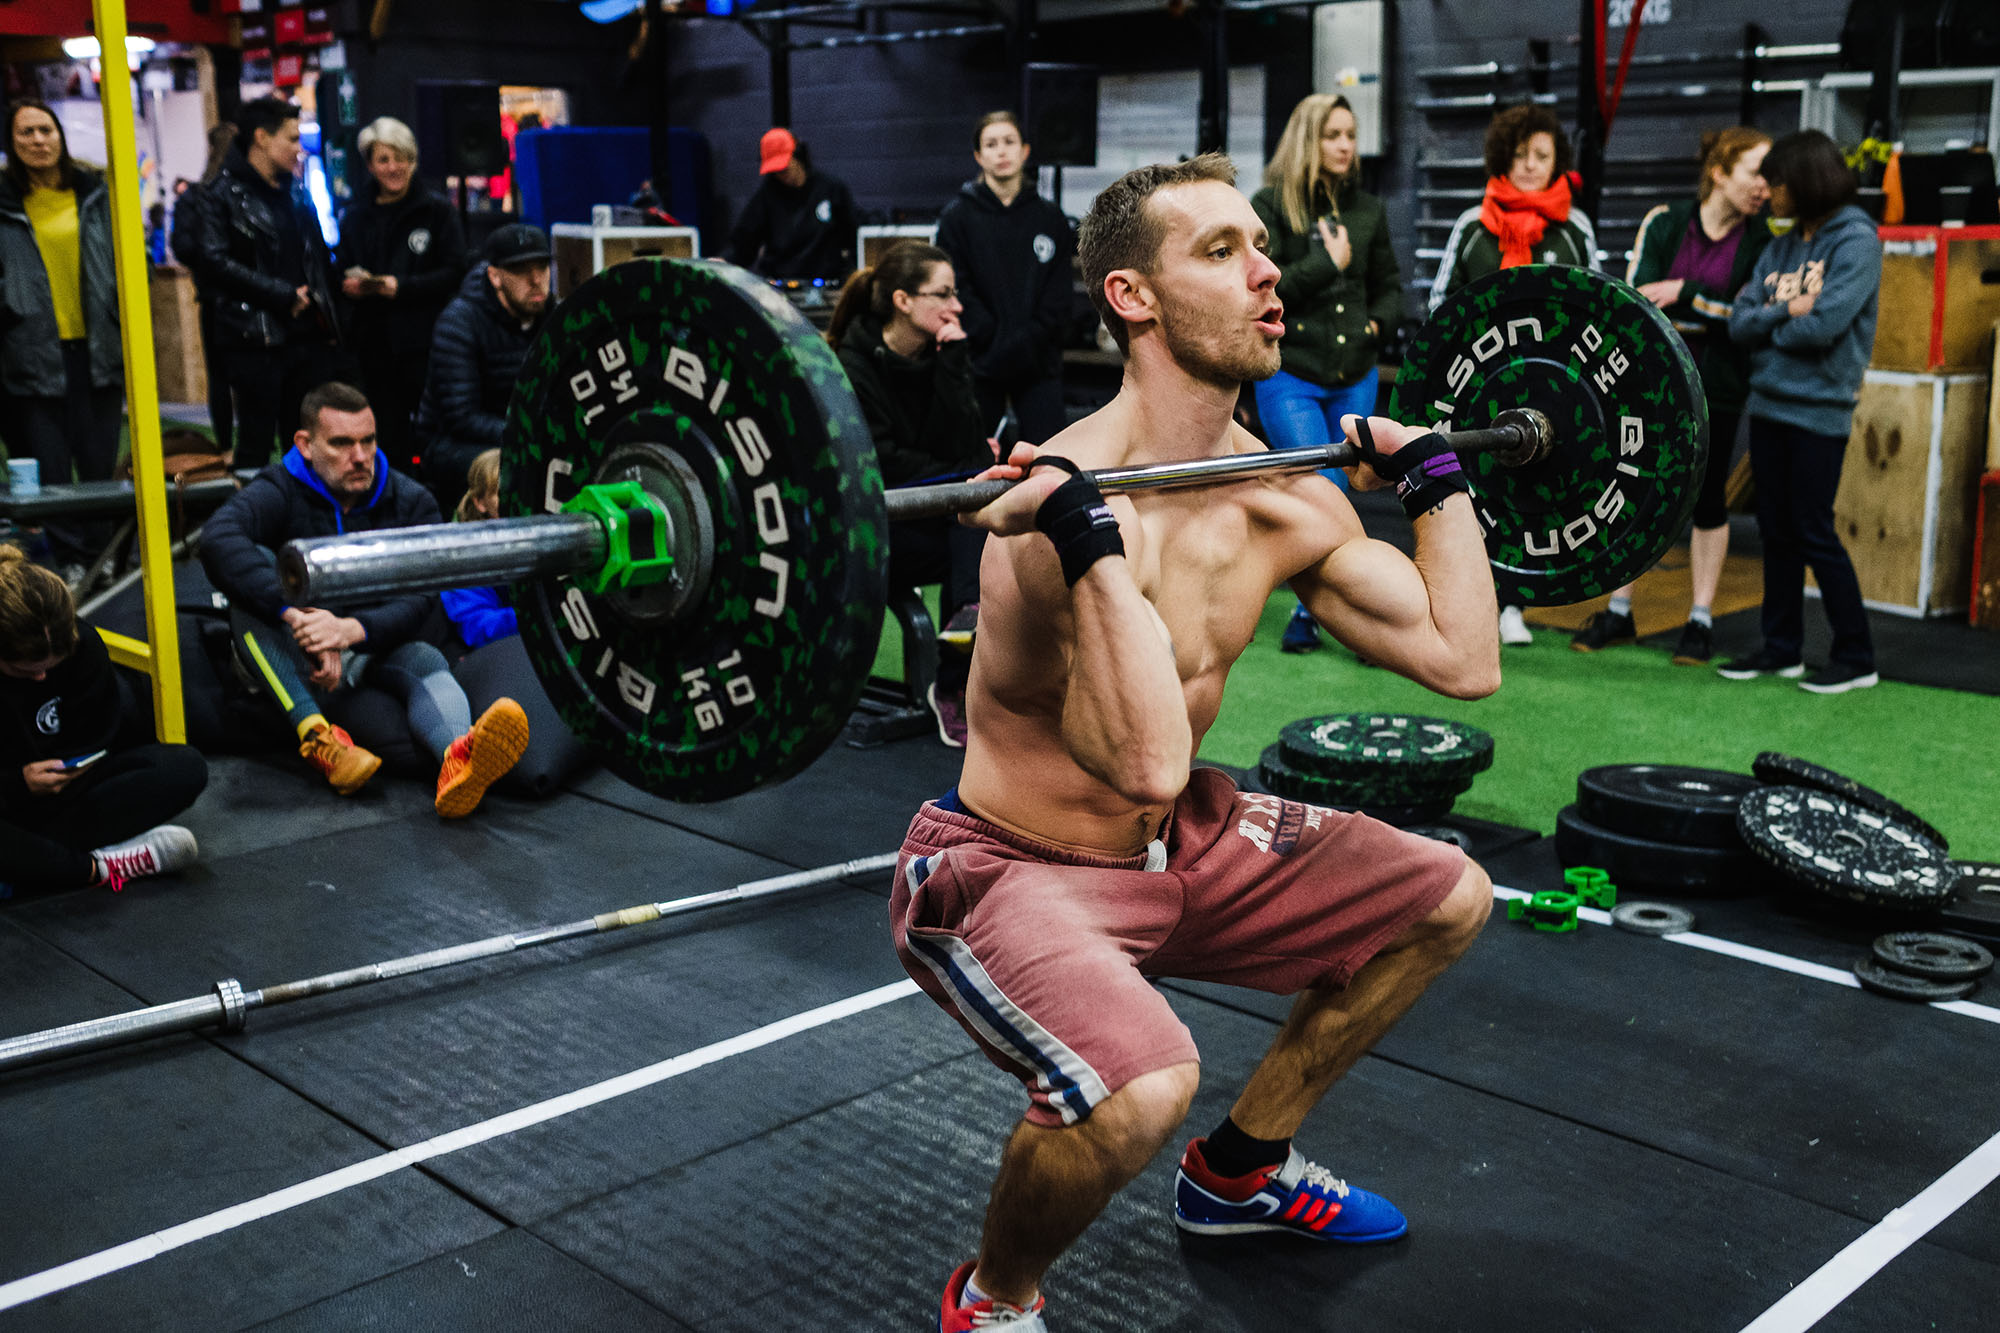 Workout athletes weightlifting